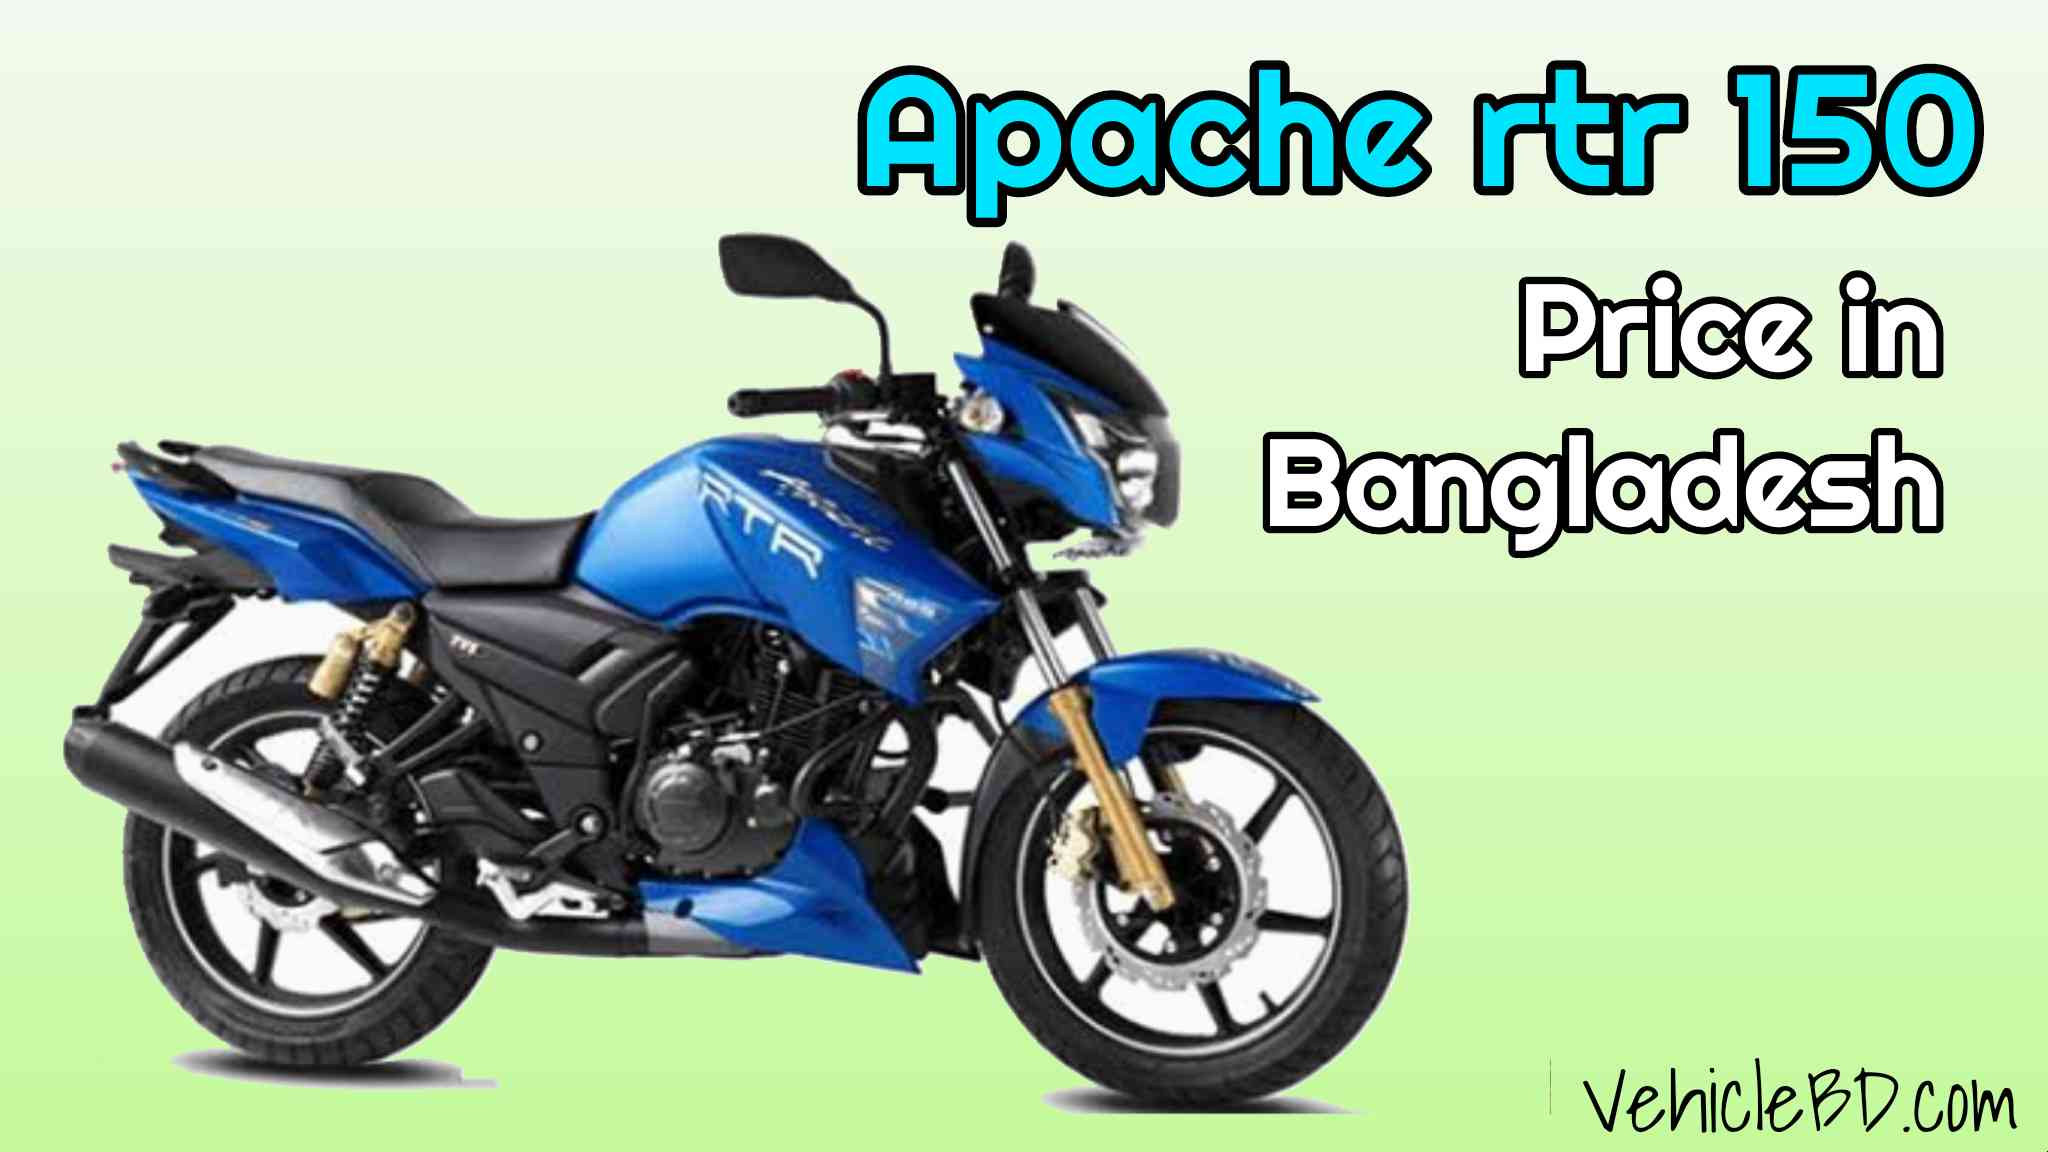 apache rtr 150 price in bangladesh 2021